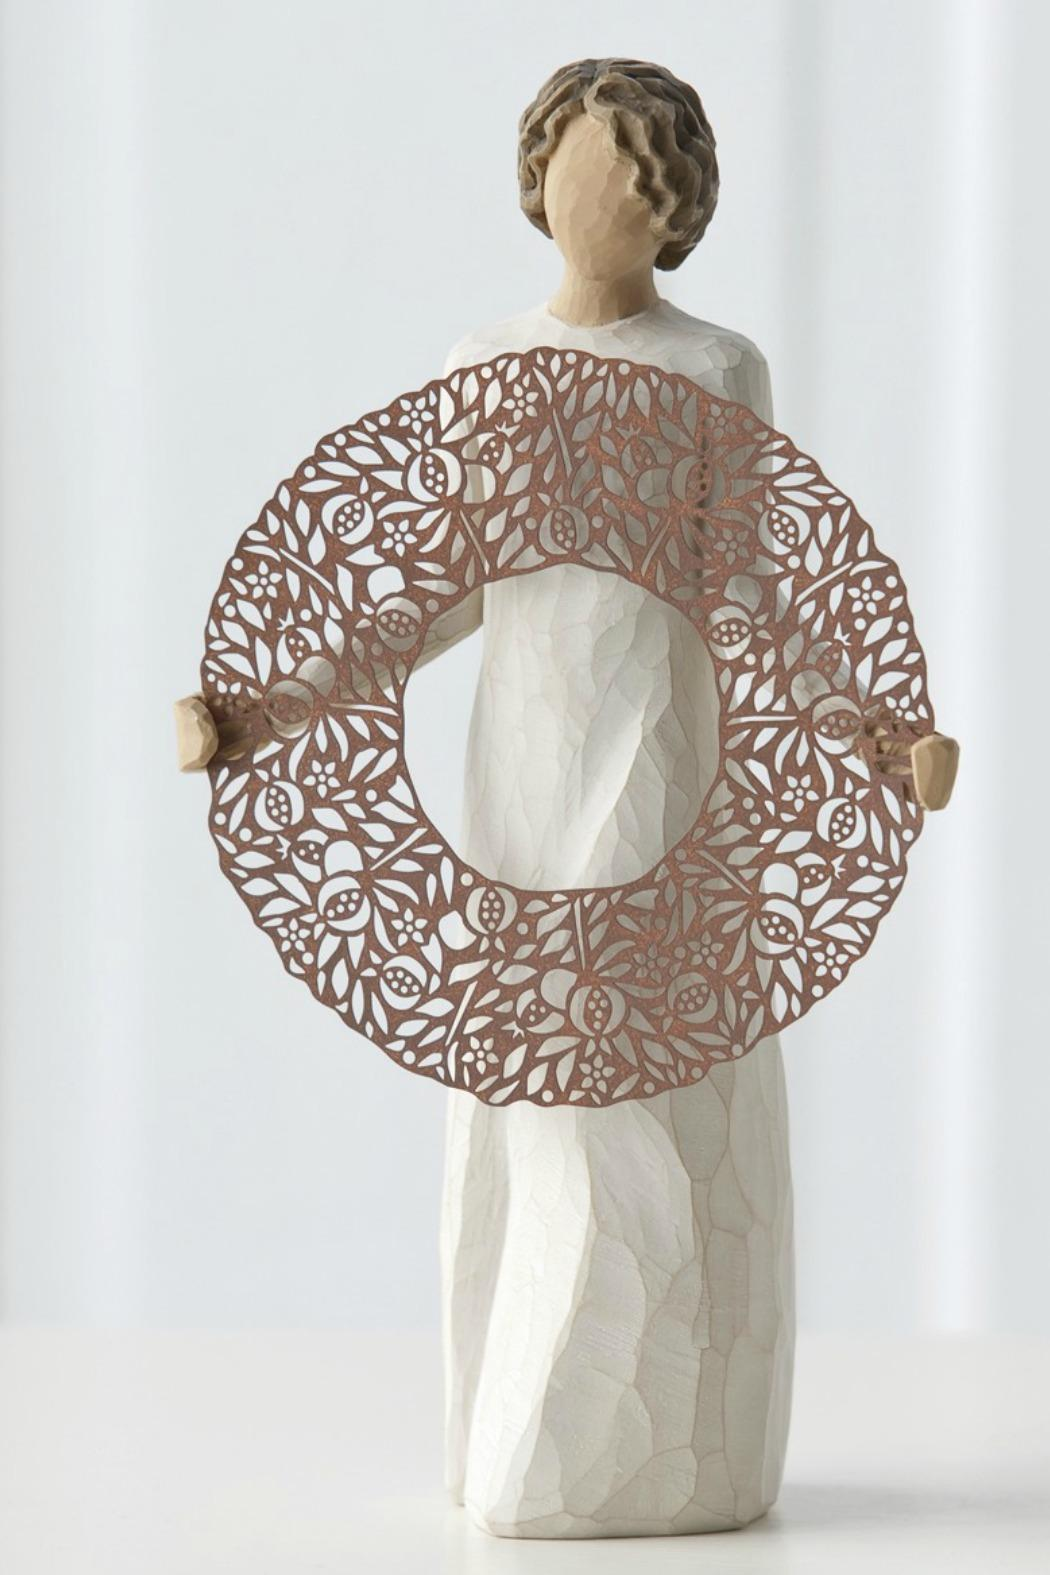 Willow Tree(r) by Susan Lordi, from DEMDACO Welcome Here Figurine - Main Image